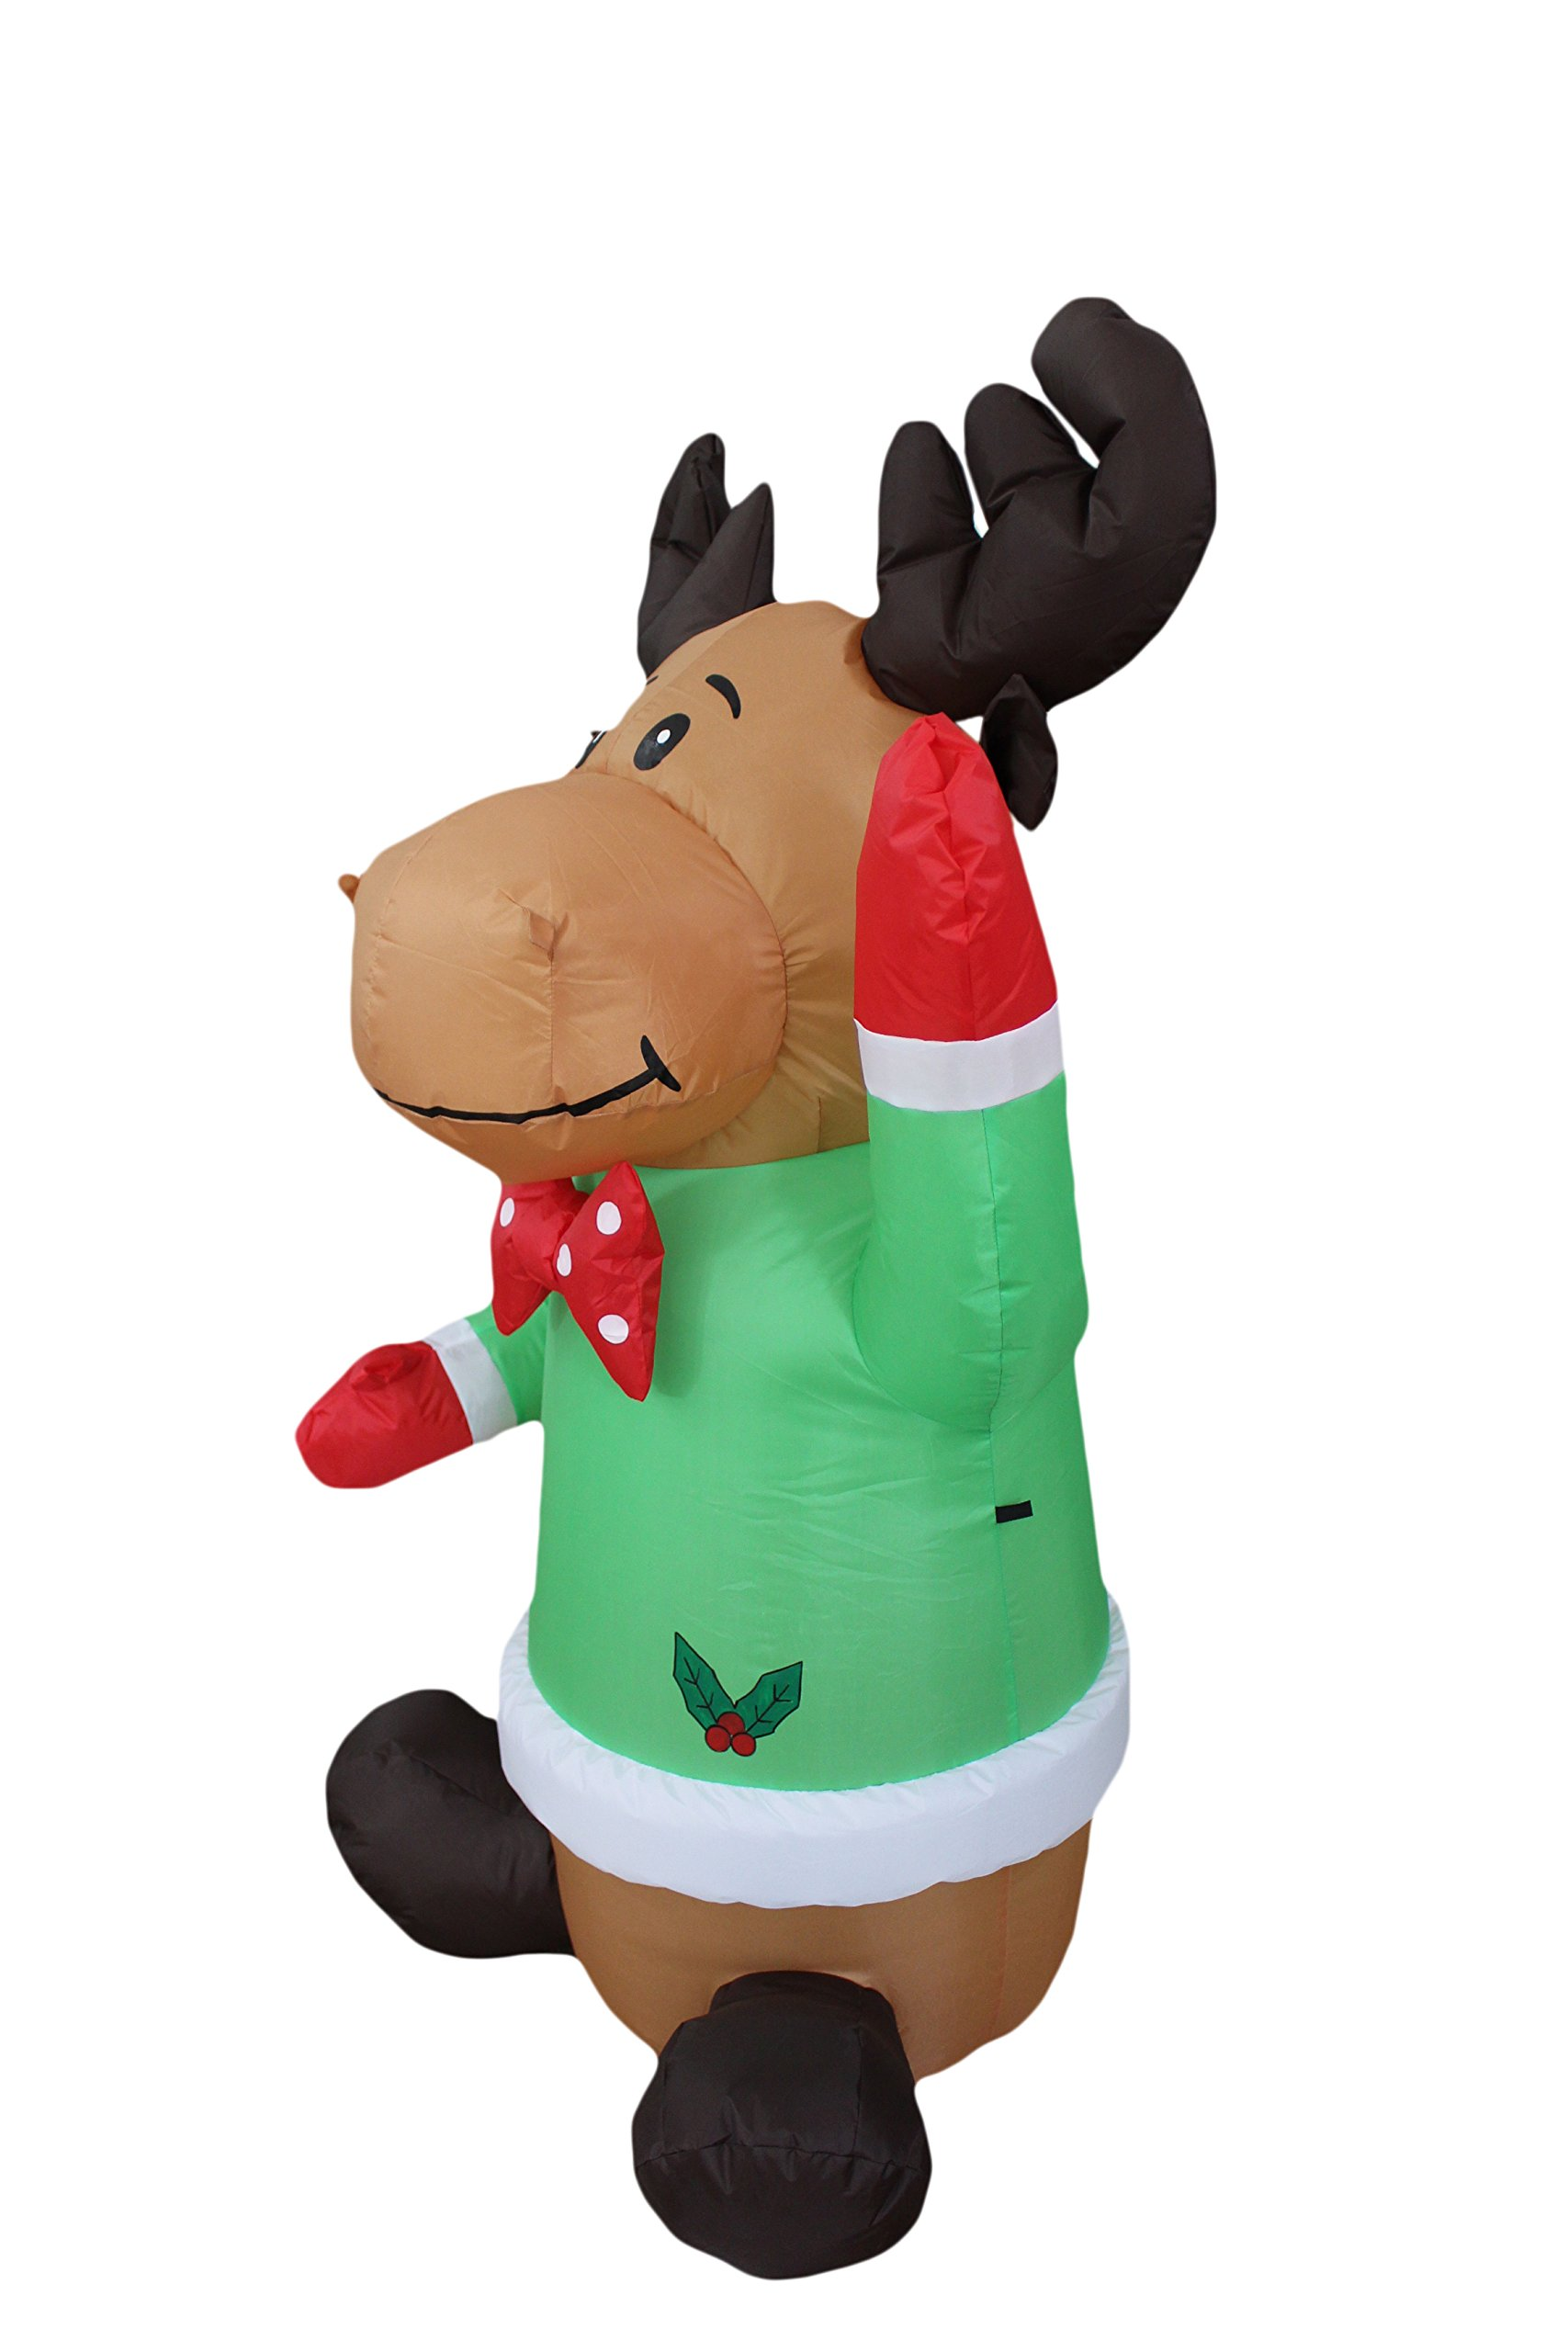 4 Foot Christmas Inflatable Sitting Reindeer Yard Blow Up Art Decoration